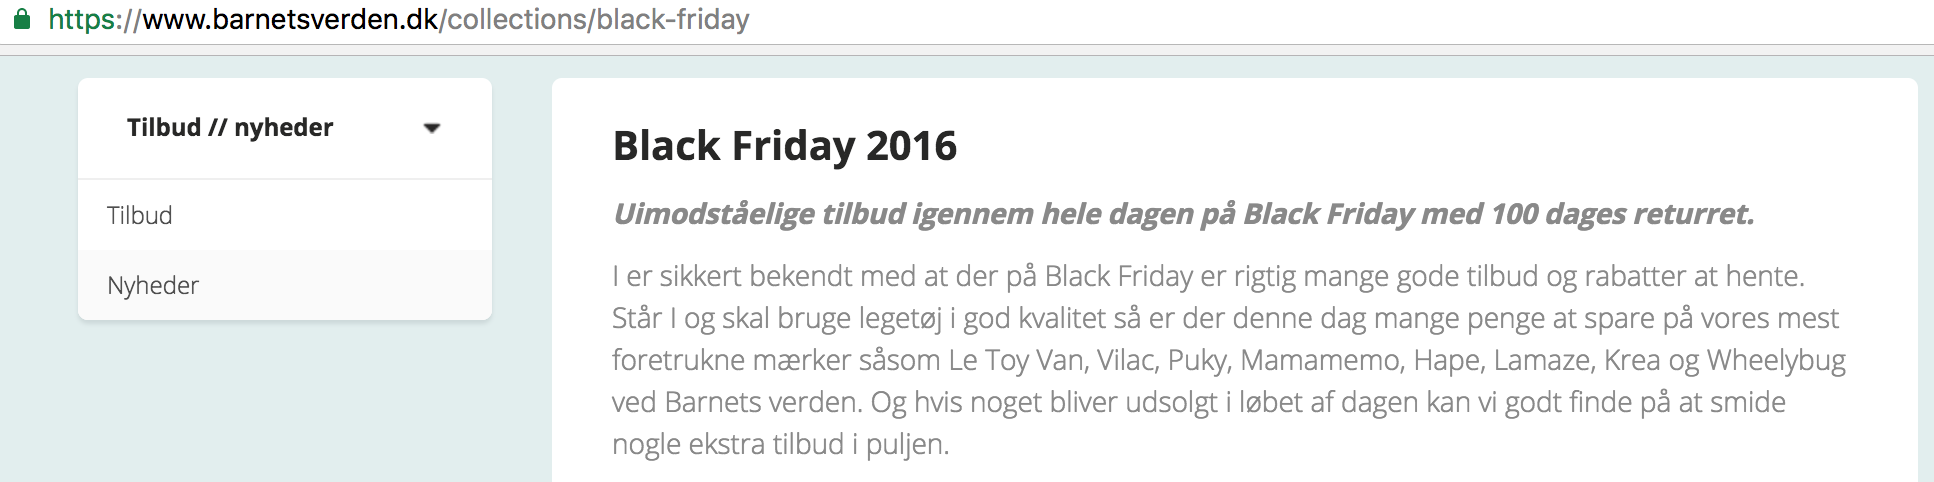 eksempel-black-friday-side